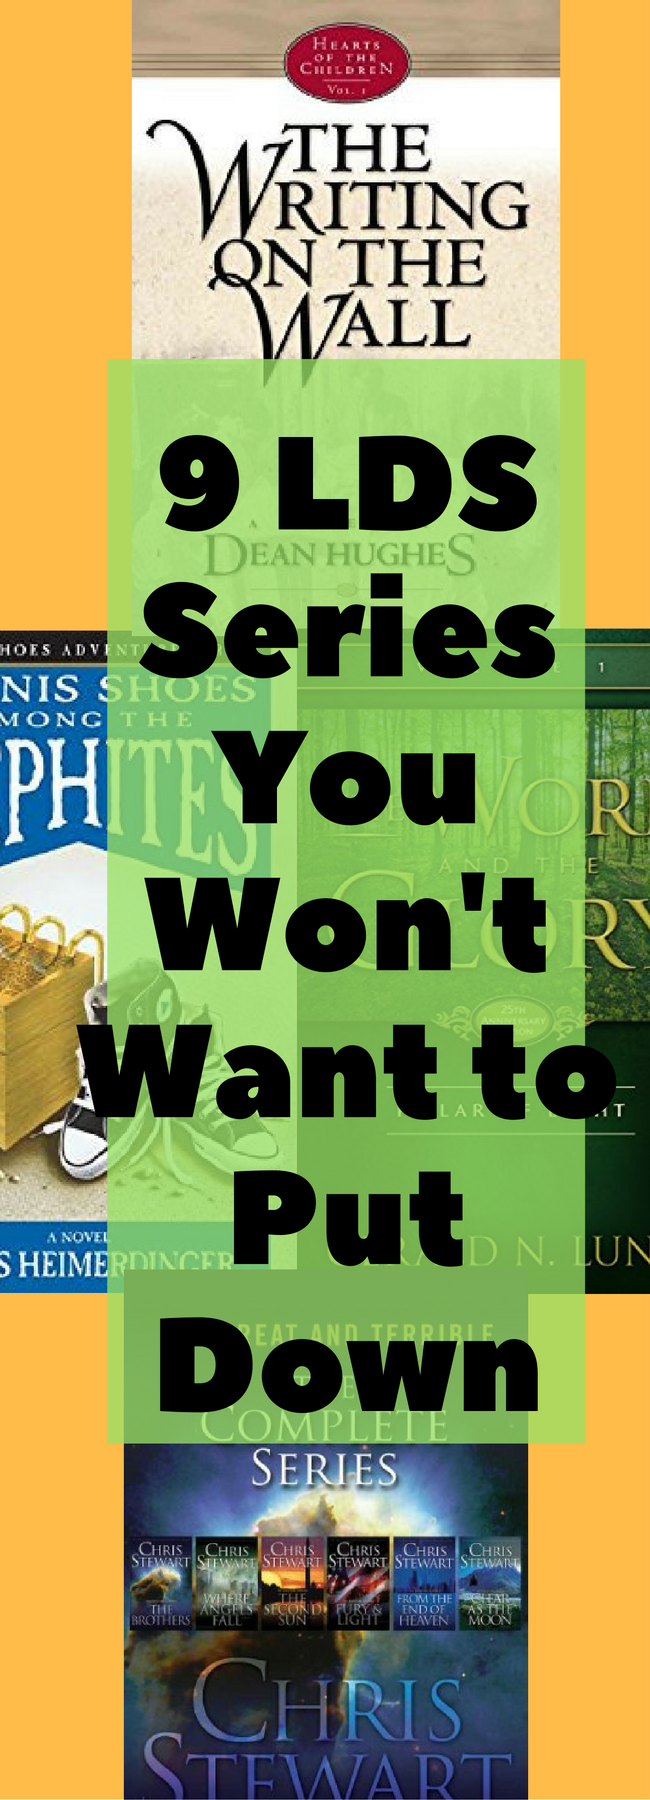 LDS Books / Best LDS Books / Good LDS Books / LDS SEries / LDS Historical Fiction / LDS Fiction